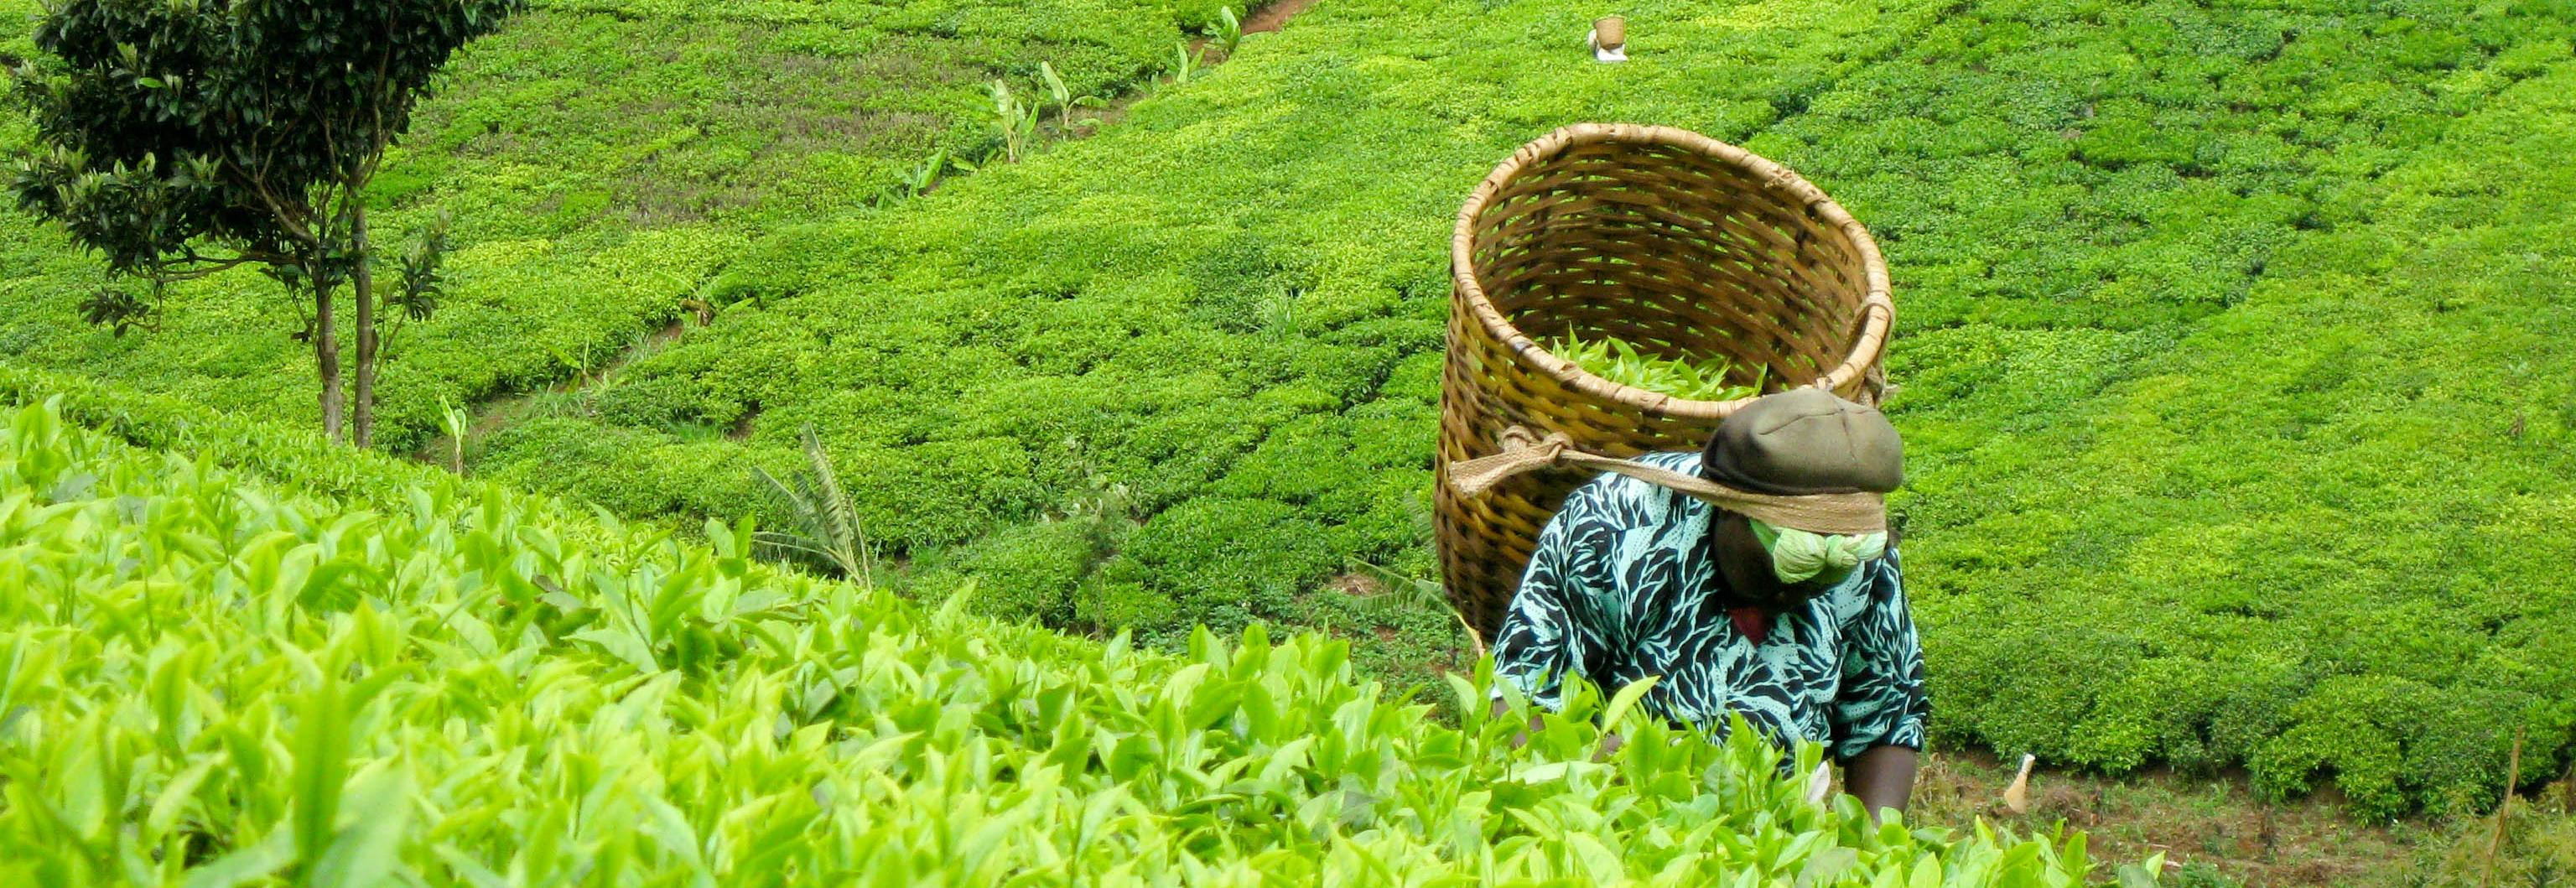 Tea harvesting in Kenya © UTZ